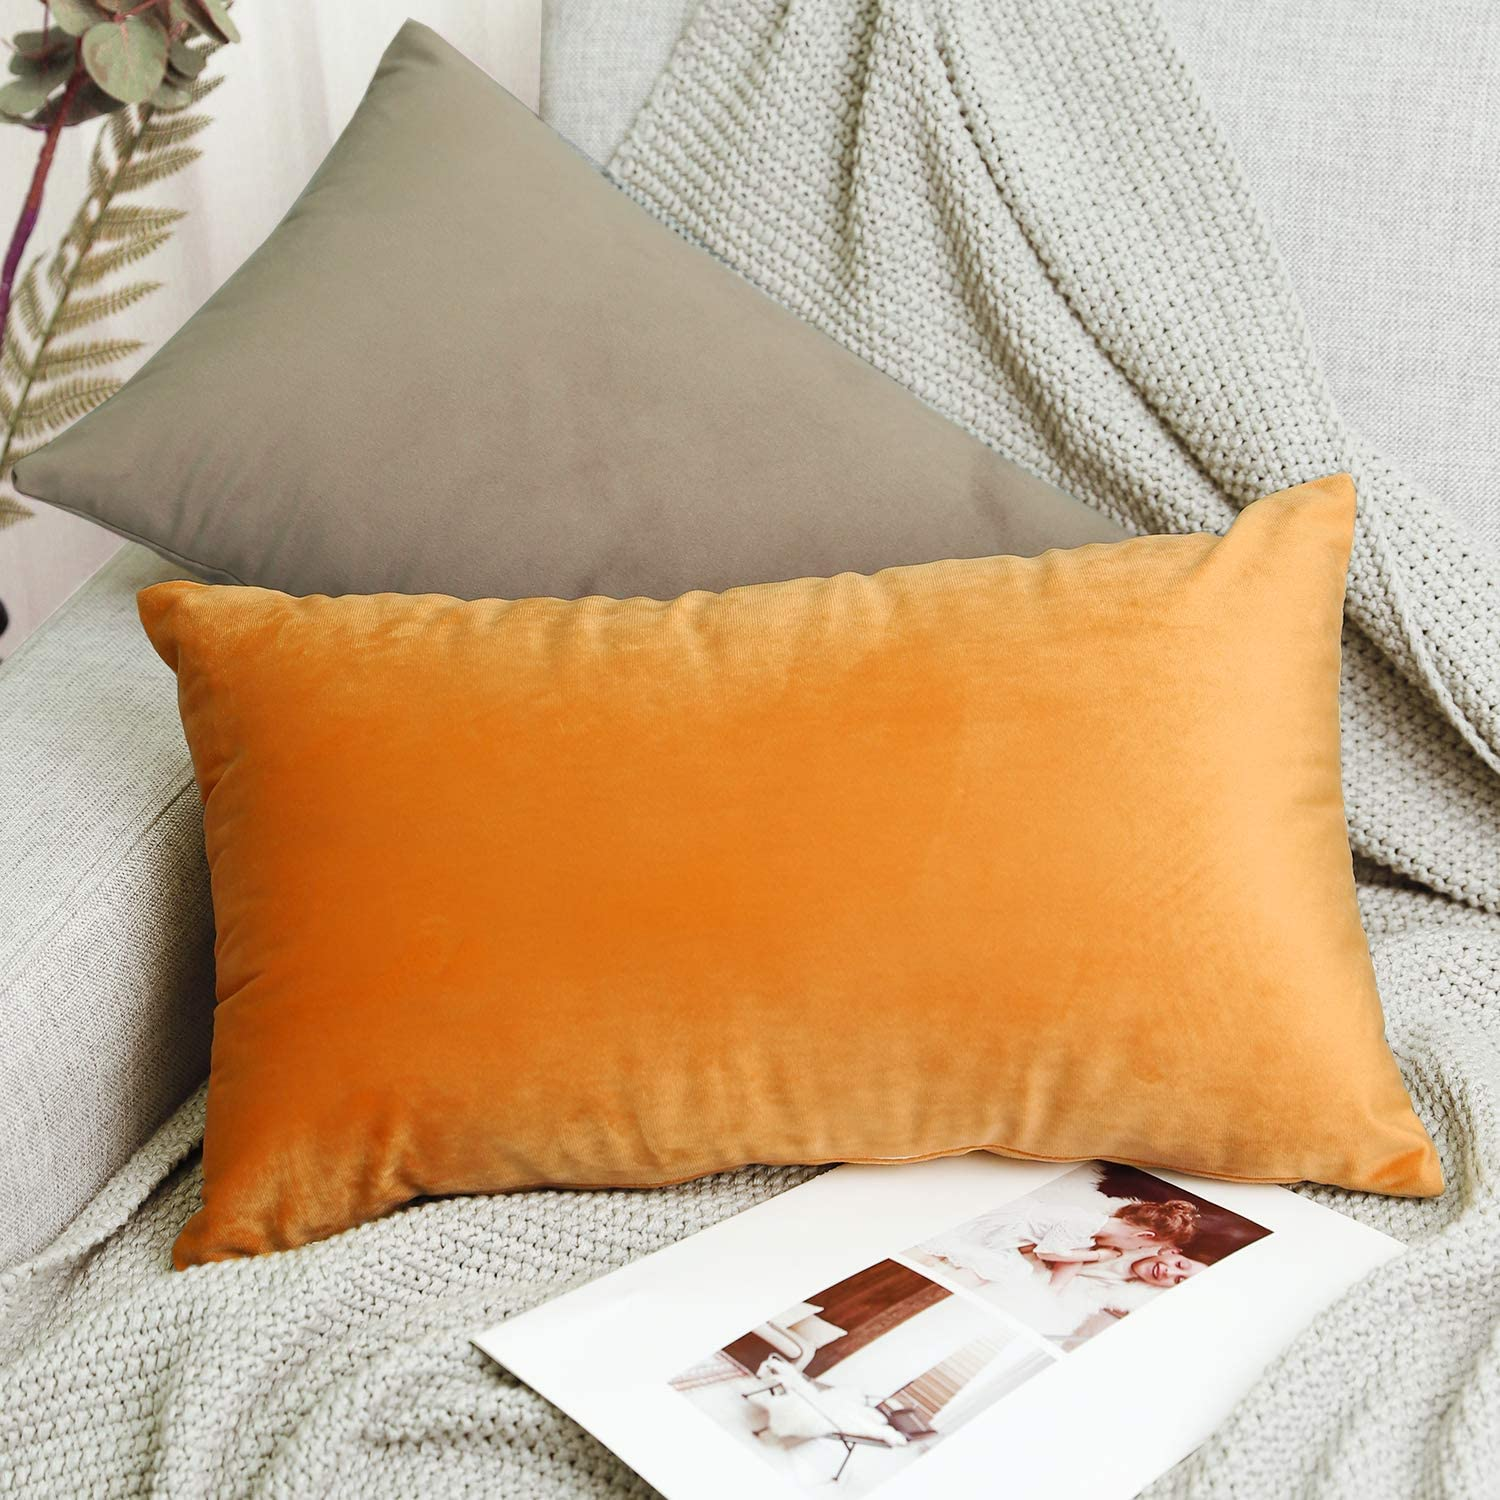 2 Pack Modern Solid Color Square Decorative Throw Pillow Case Cover for Car Sofa Bed Couch Home Decor 12x20 Lewondr Velvet Soft Cushion Cover Coffee 30x50cm